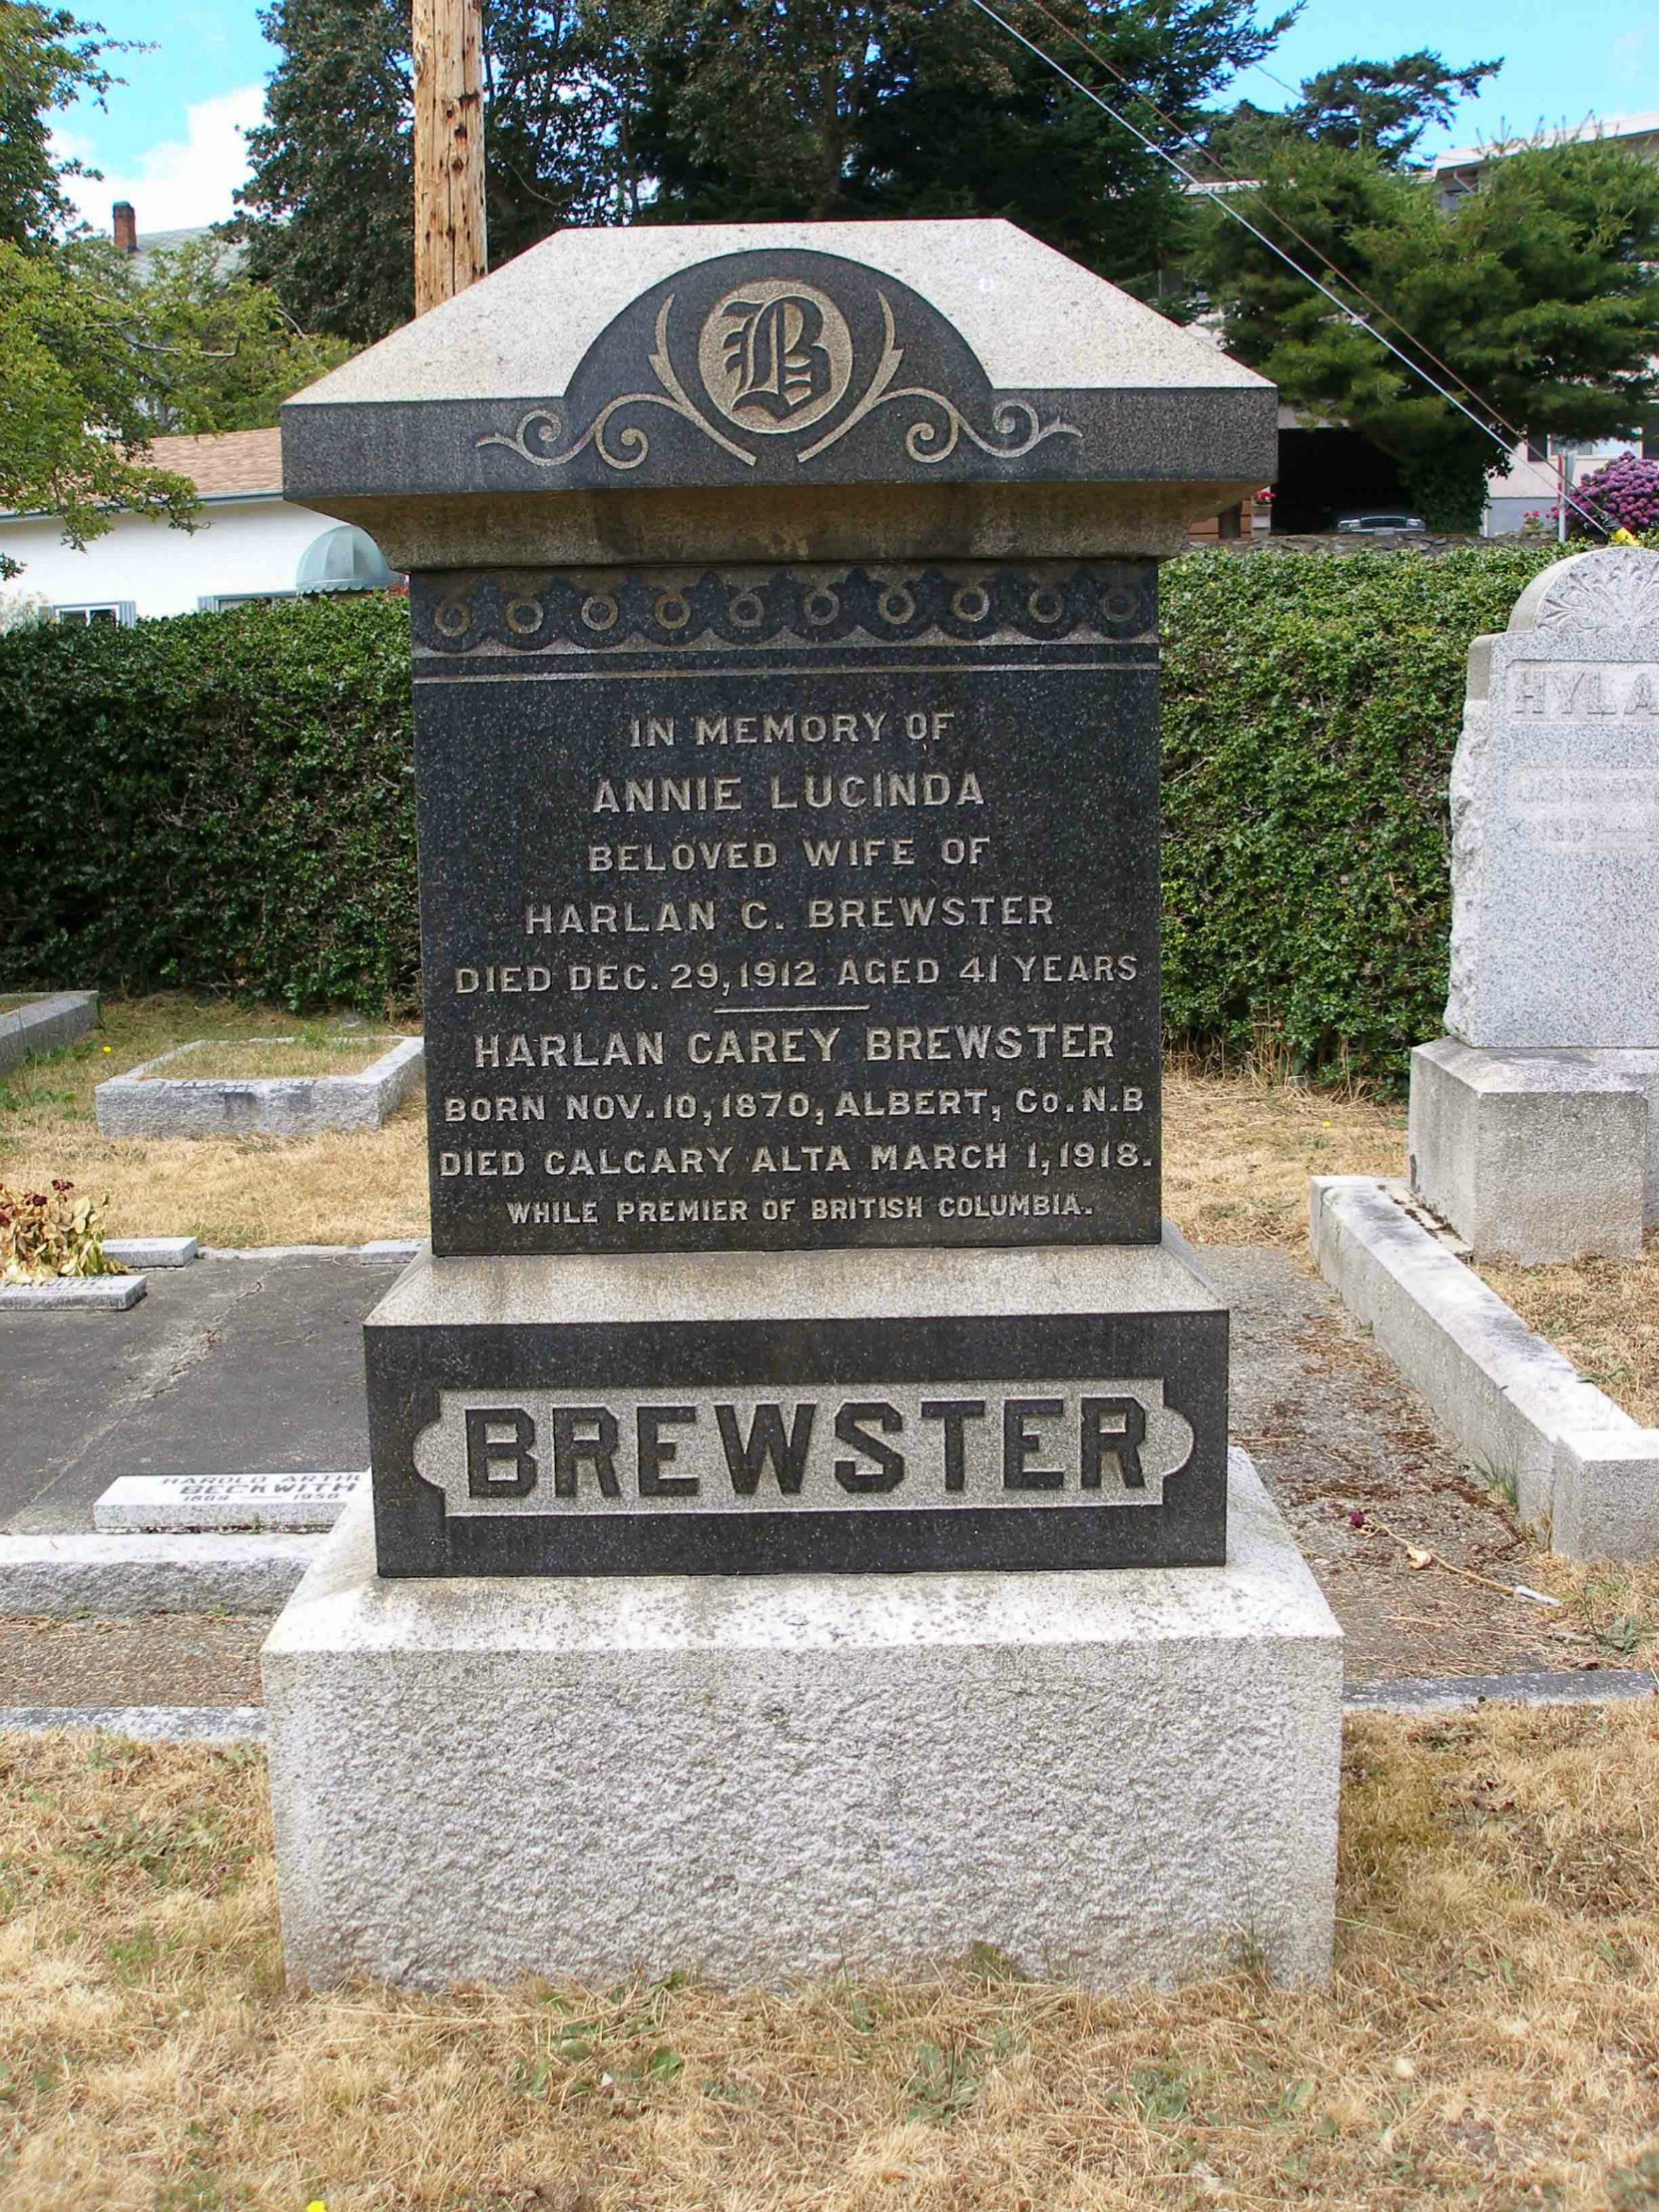 Harlan Carey Brewster grave stone, Ross Bay Cemetery, Victoria, B.C. (photo by Temple Lodge No. 33 Historian)